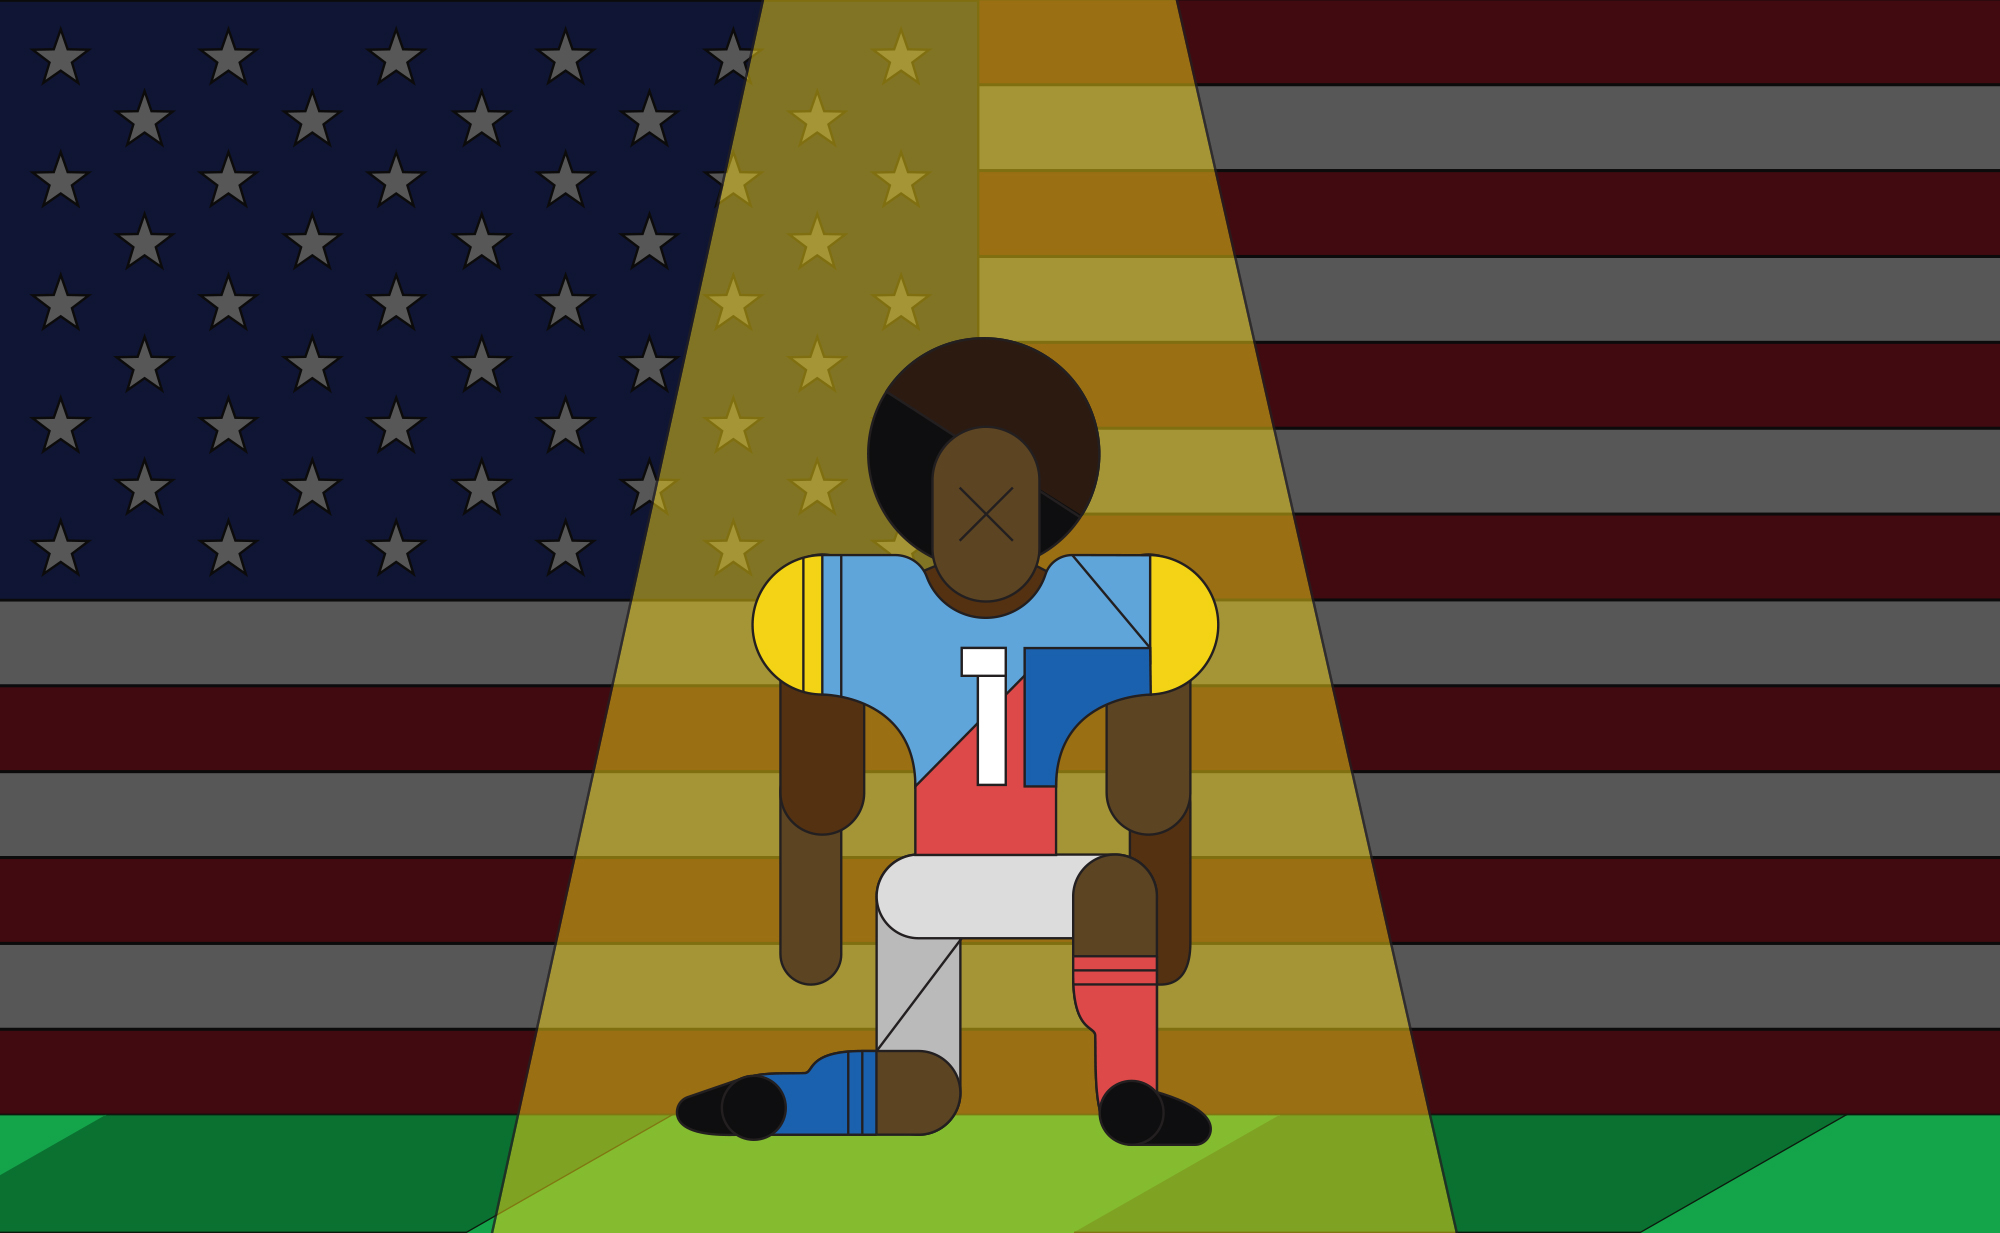 22073b4b3ed The truth behind why NFL players are protesting and how their message gets  lost in the politics